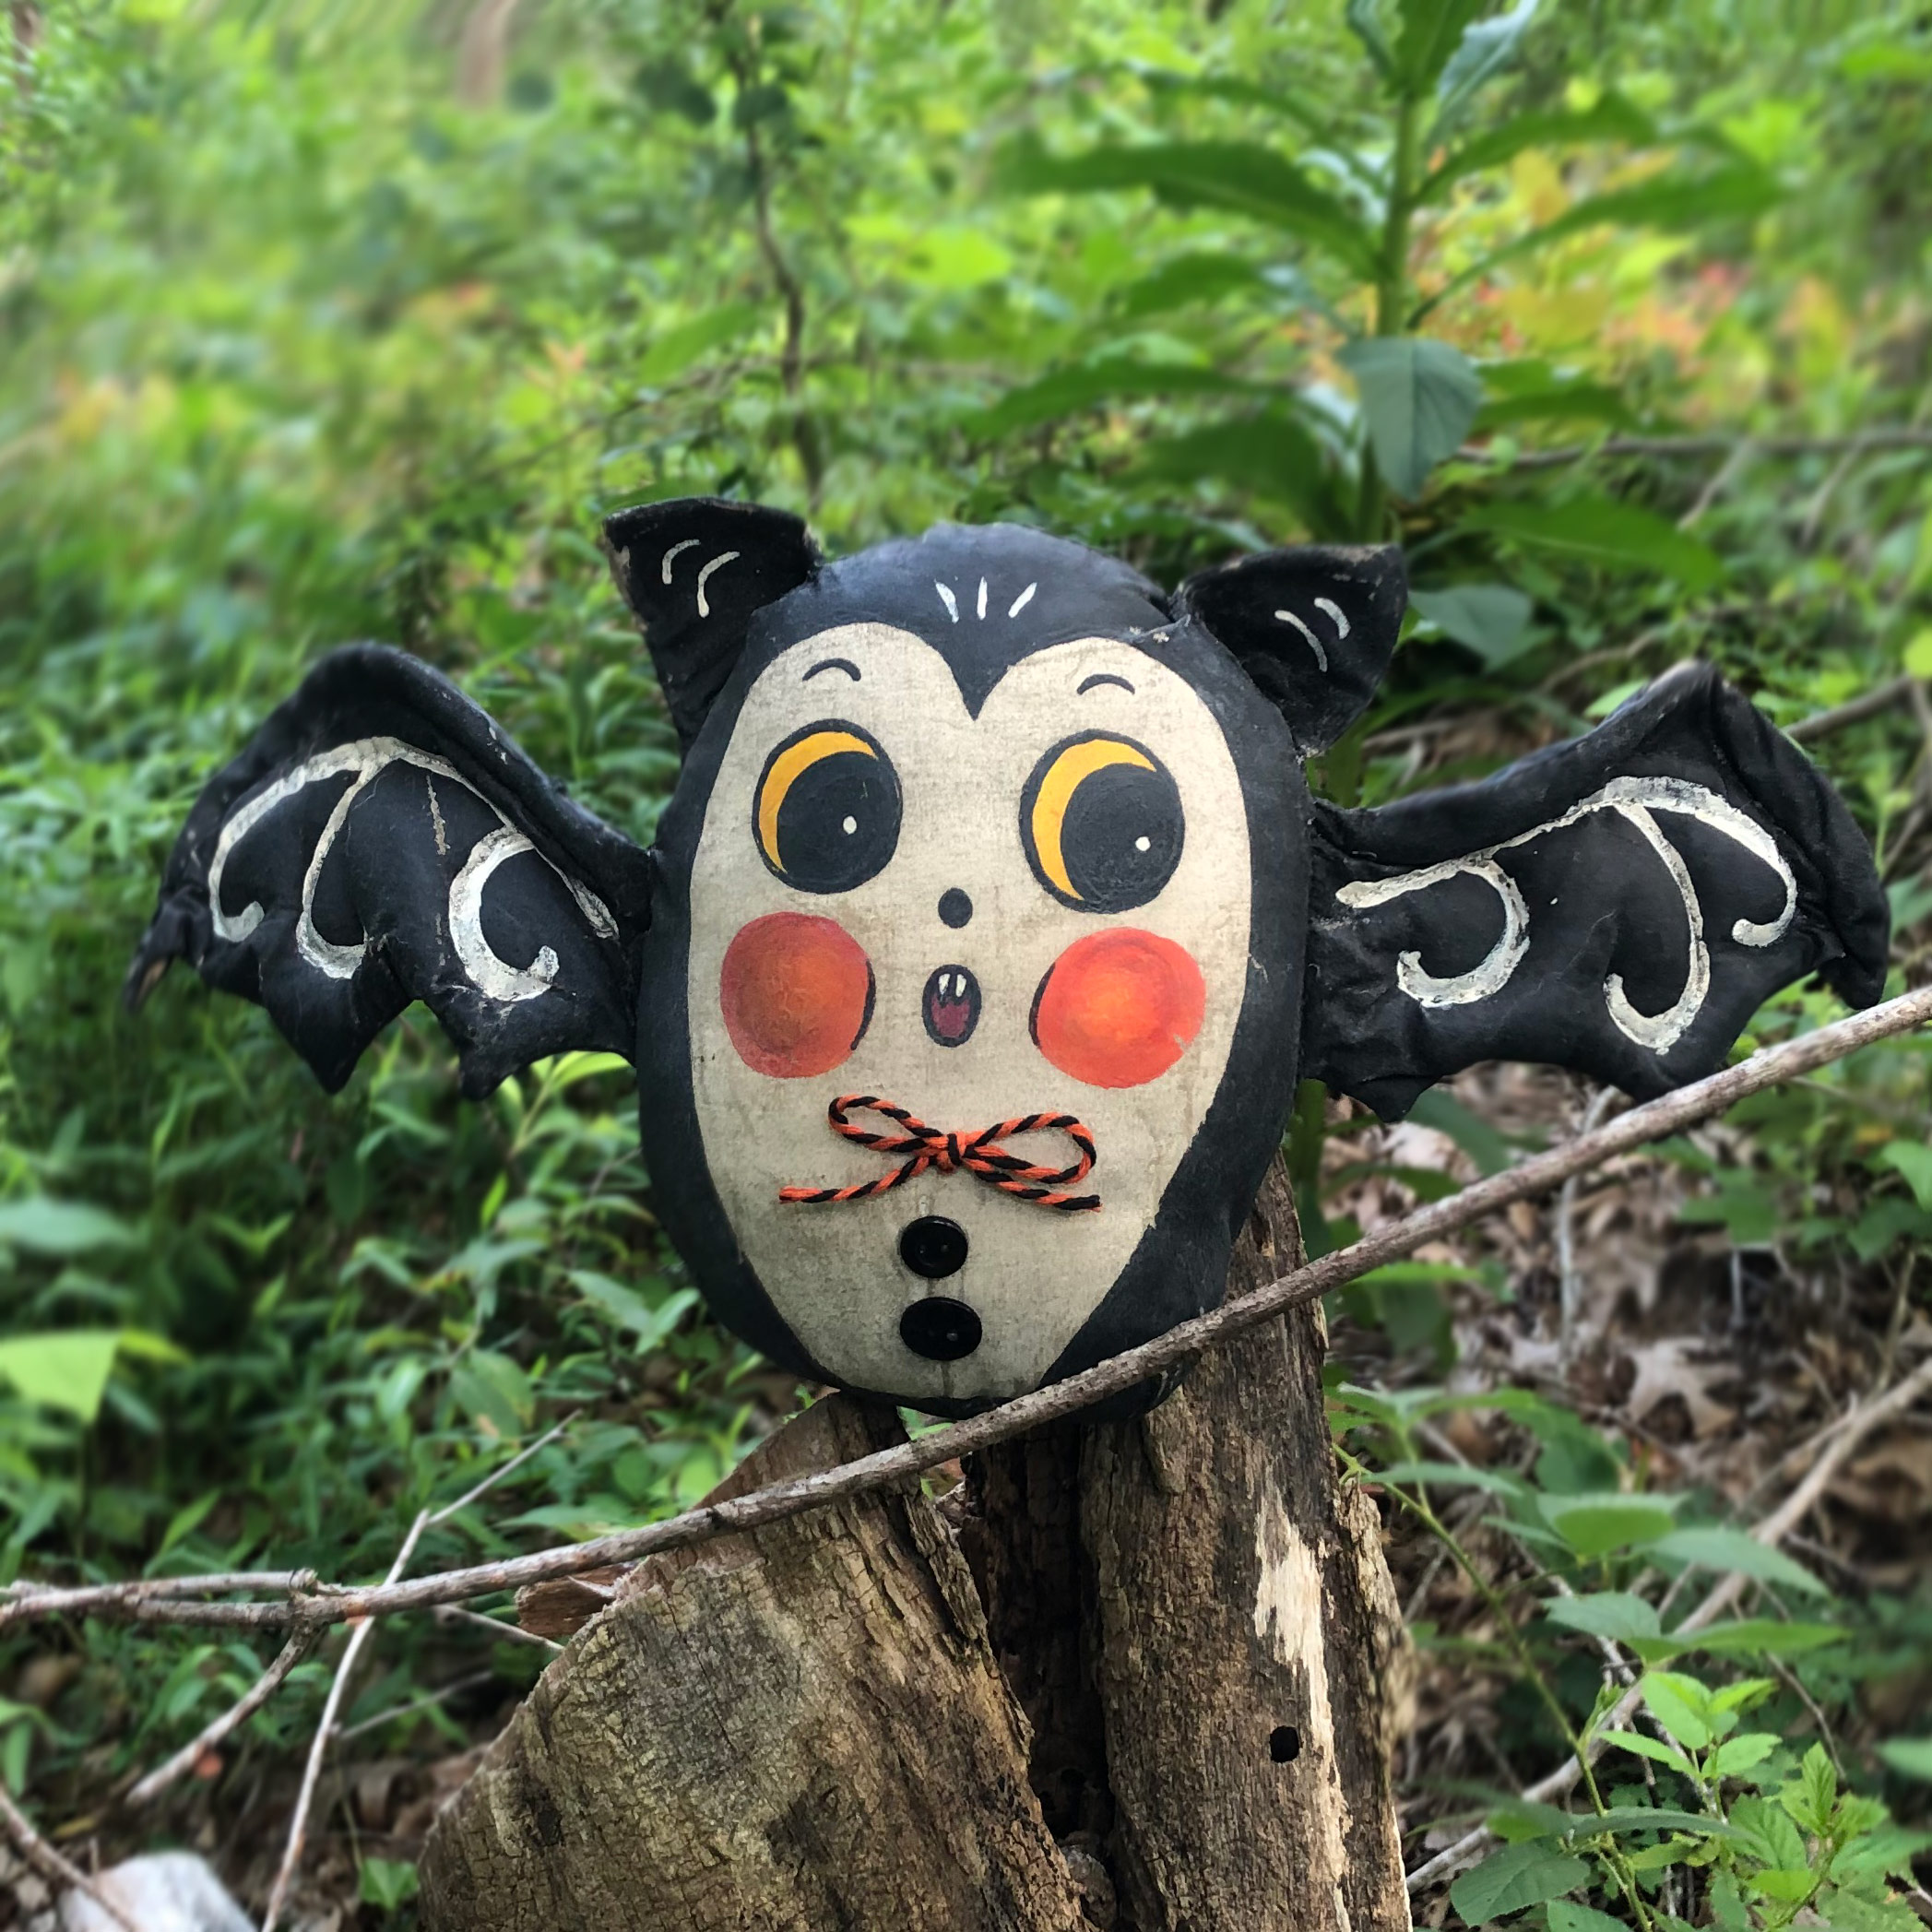 JPD Partners in Craft * Amber's Imagination Co. + Johanna Parker Design * Artist Collaboration ~ Hand-sewn, painted and distressed weighted bat with posable wings!